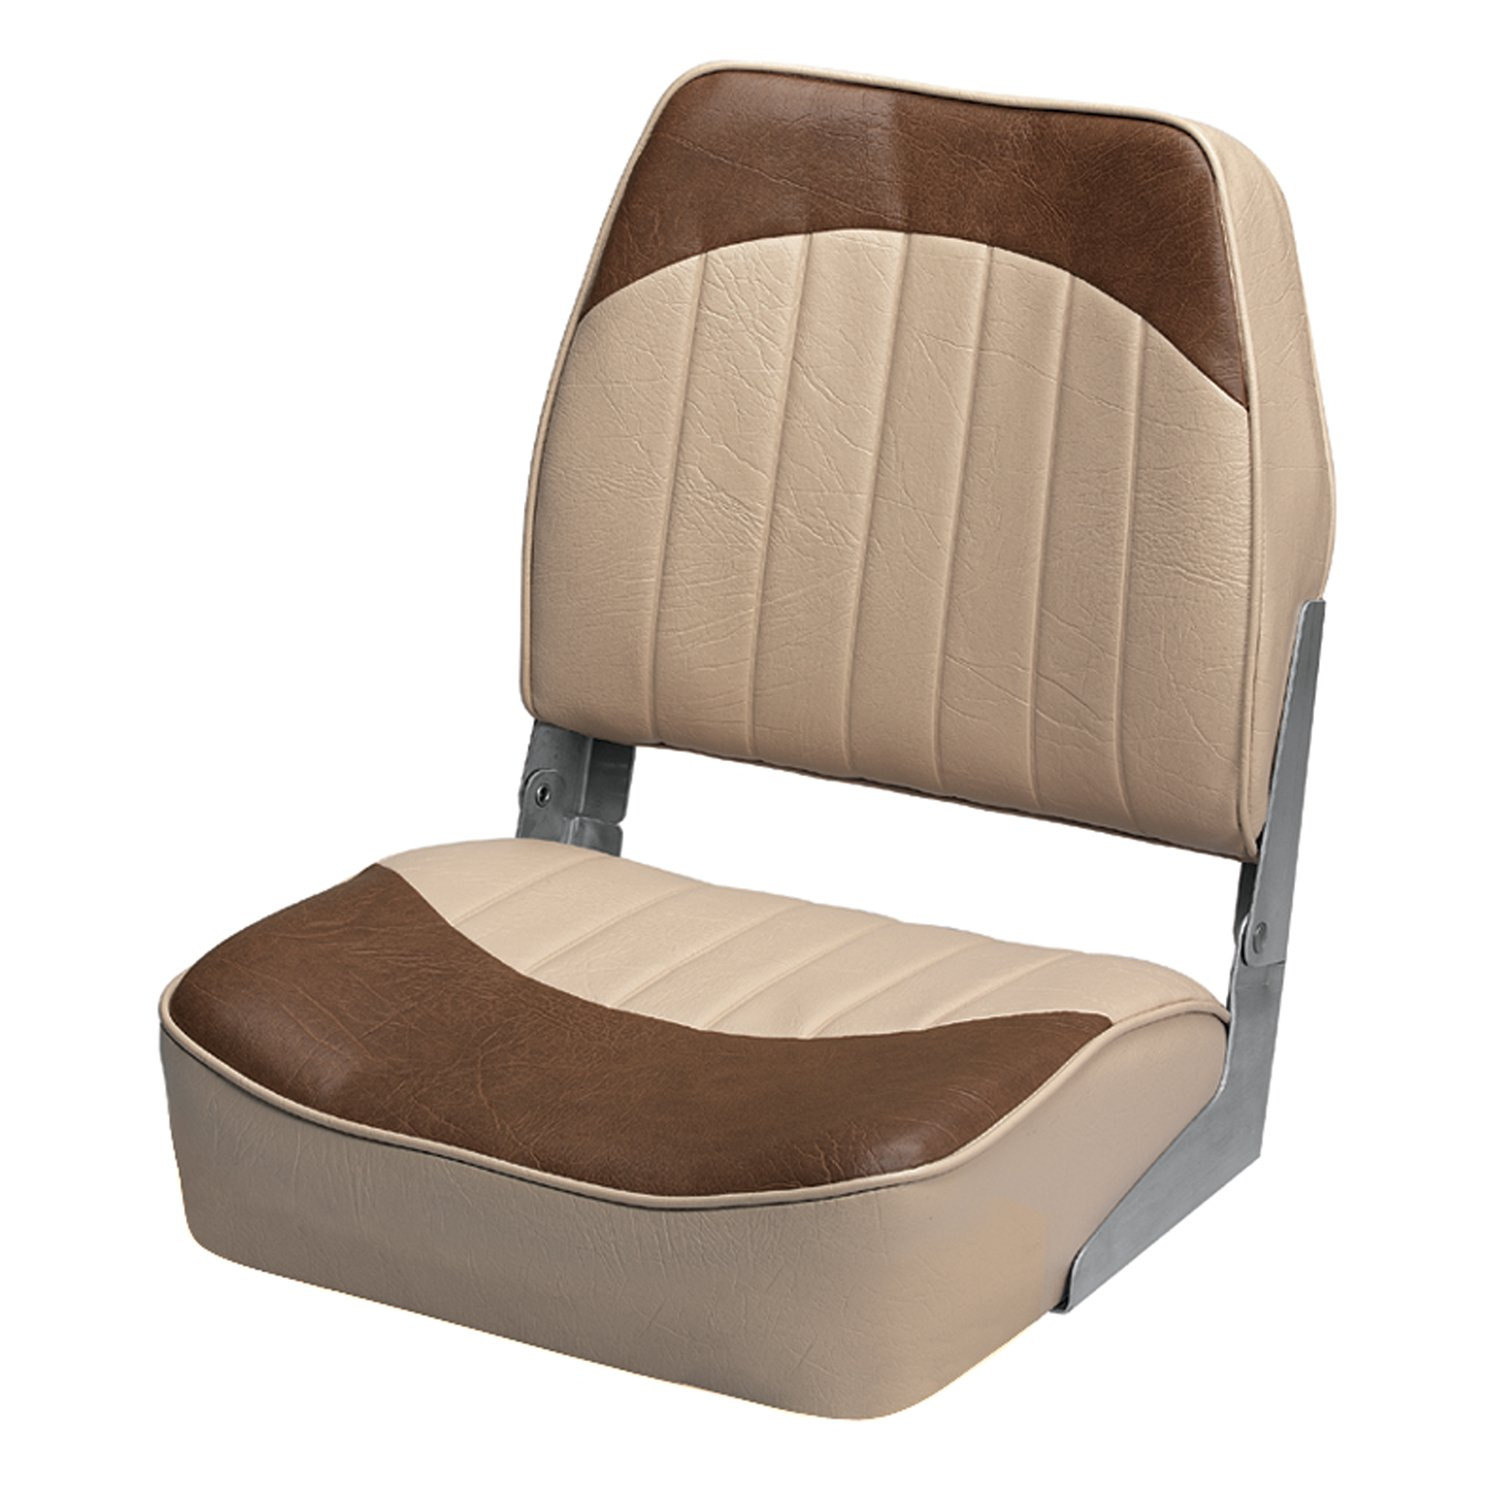 Wise 8WD734PLS-662 Low Back Boat Seat, Sand/Brown